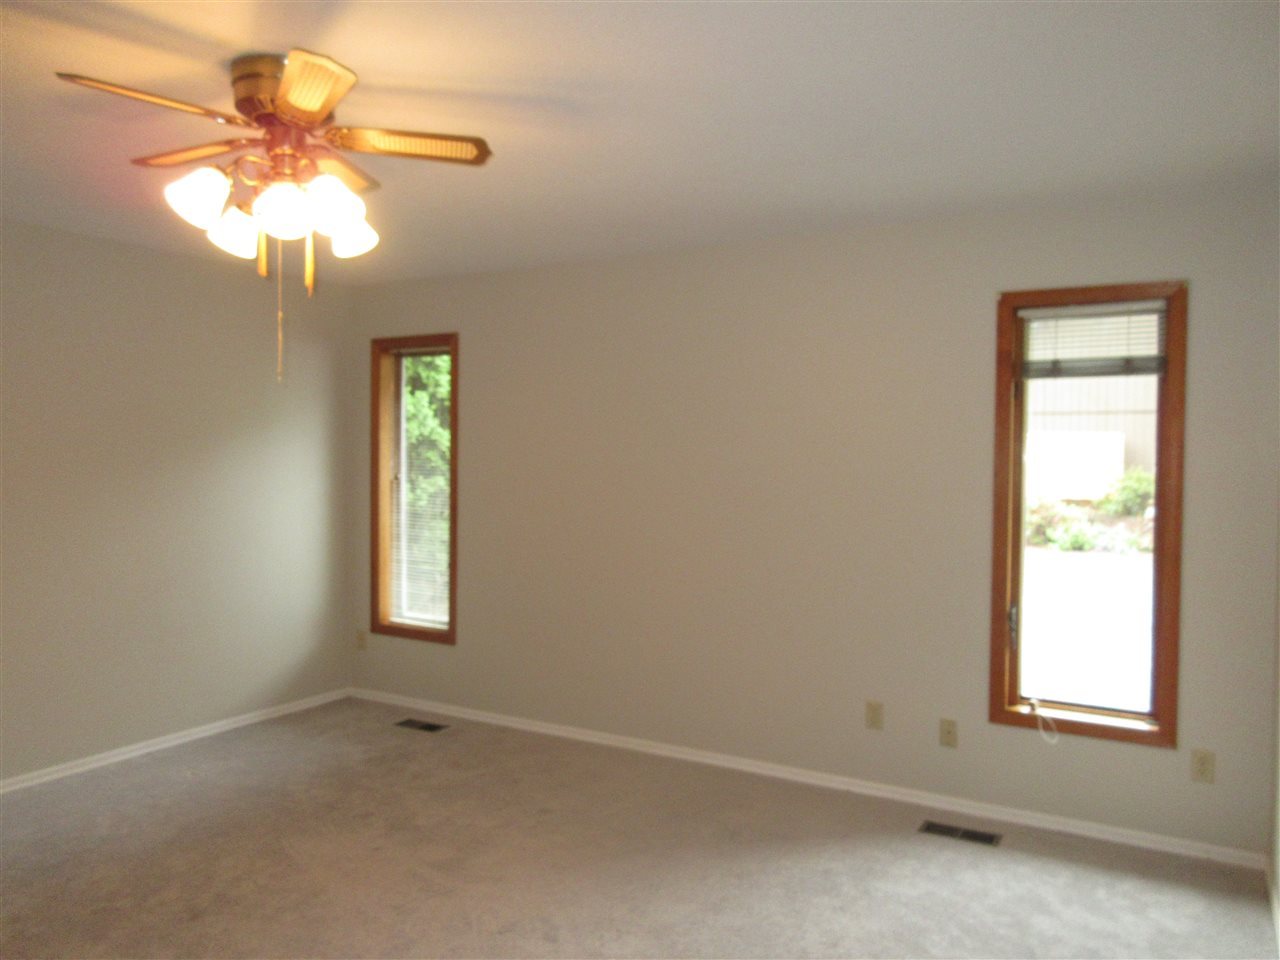 Photo 17: 45625 WORTHINGTON Place in Sardis: Sardis West Vedder Rd House for sale : MLS(r) # R2176017